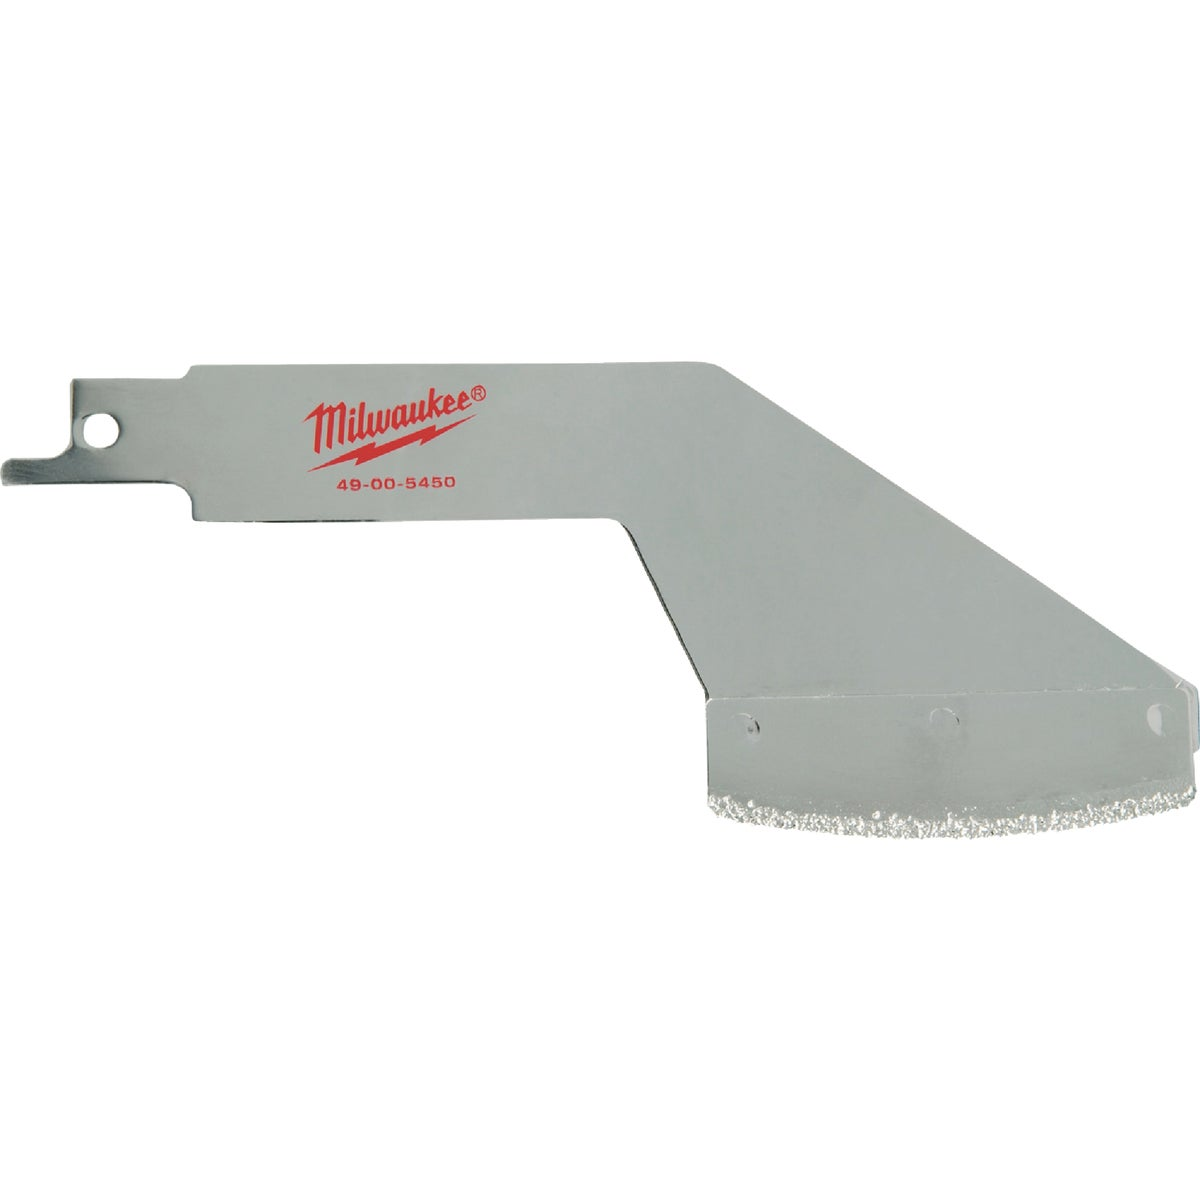 GROUT REMOVAL TOOL - 49005450 by Milwaukee Accessory